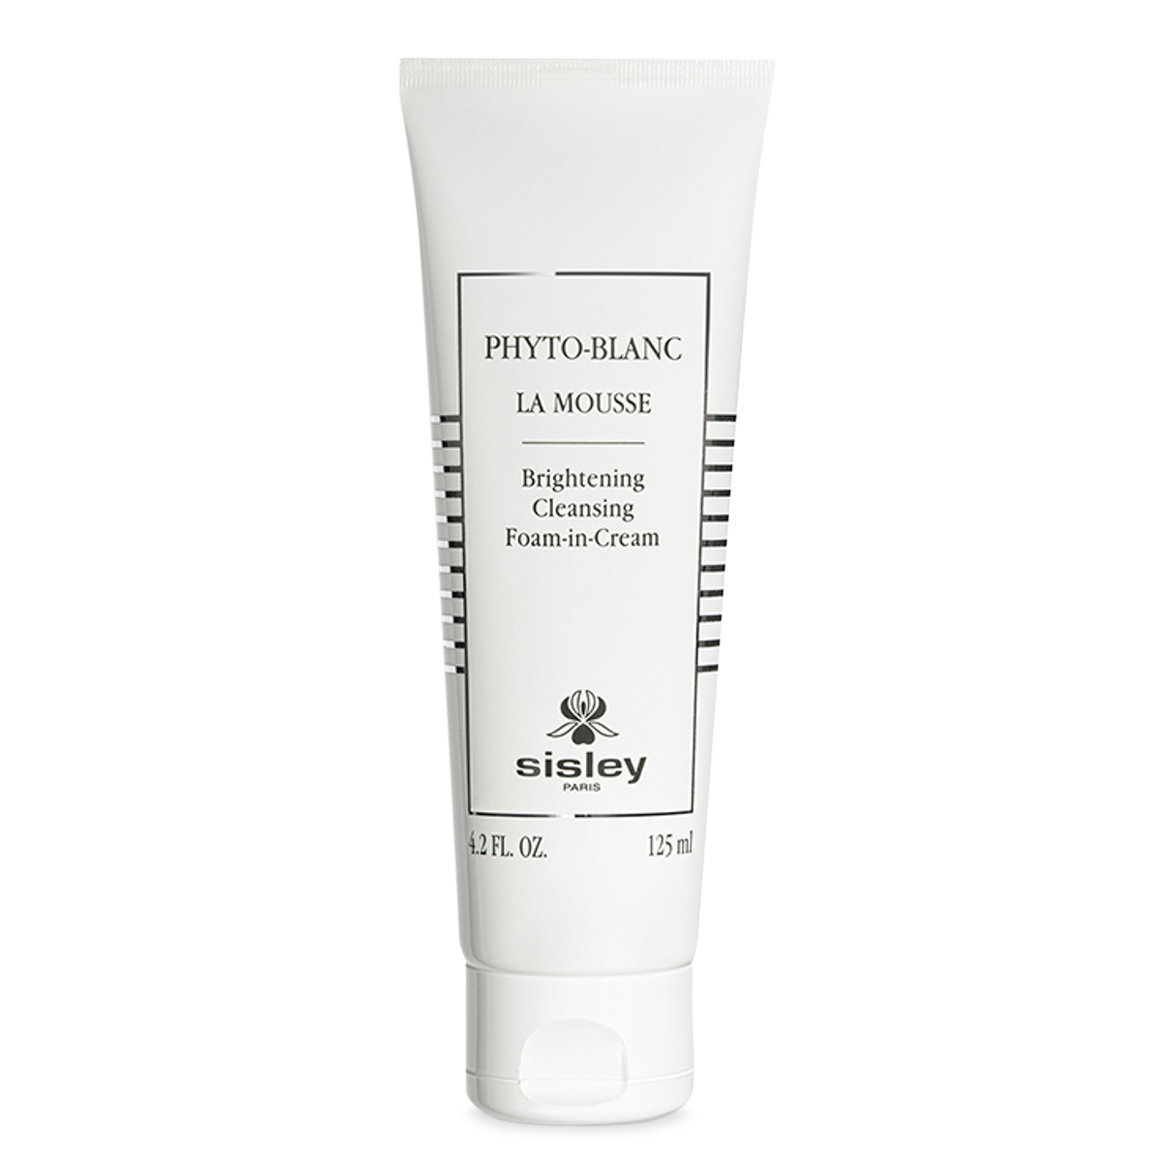 Sisley-Paris Phyto-Blanc Brightening Cleansing Foam alternative view 1 - product swatch.